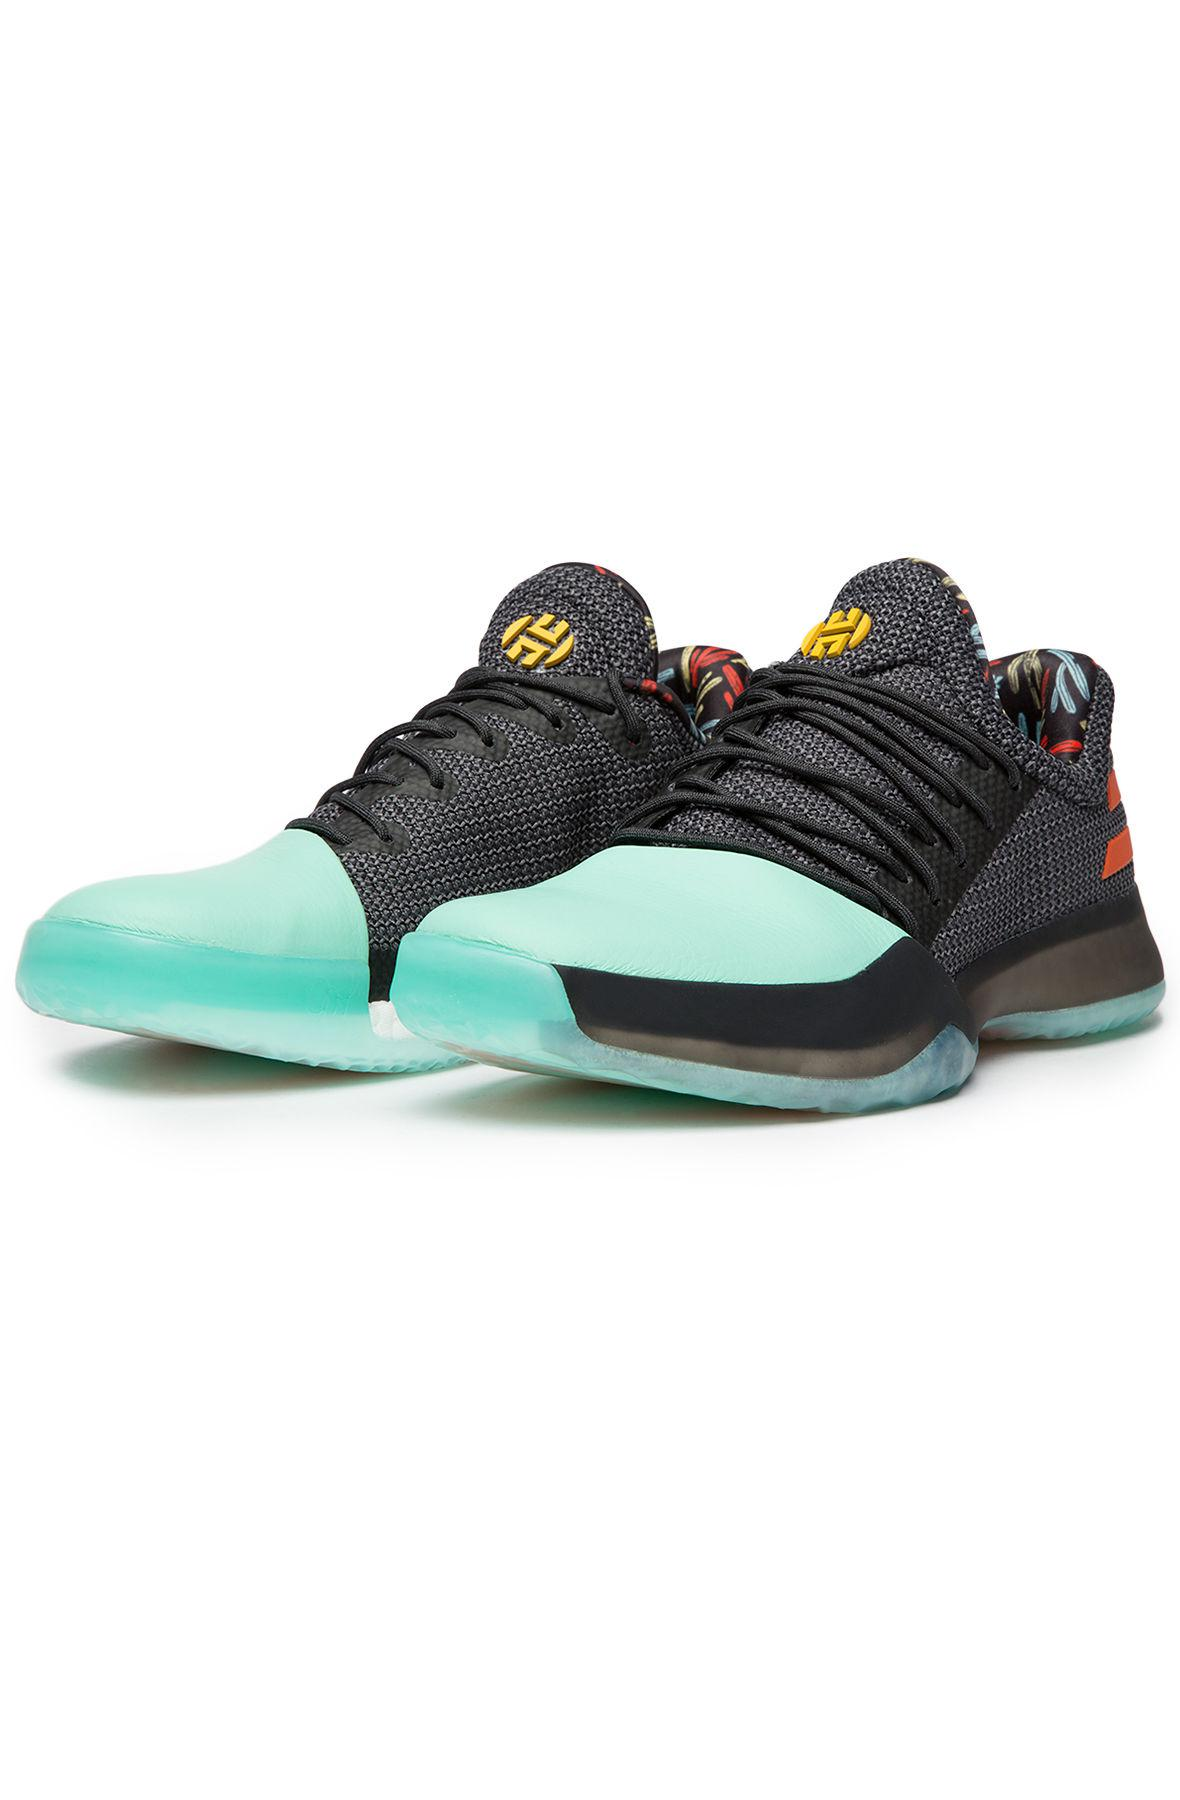 Lyst - adidas The Harden Vol. 1 In Coral Black And Green in Black ... 7515e5252